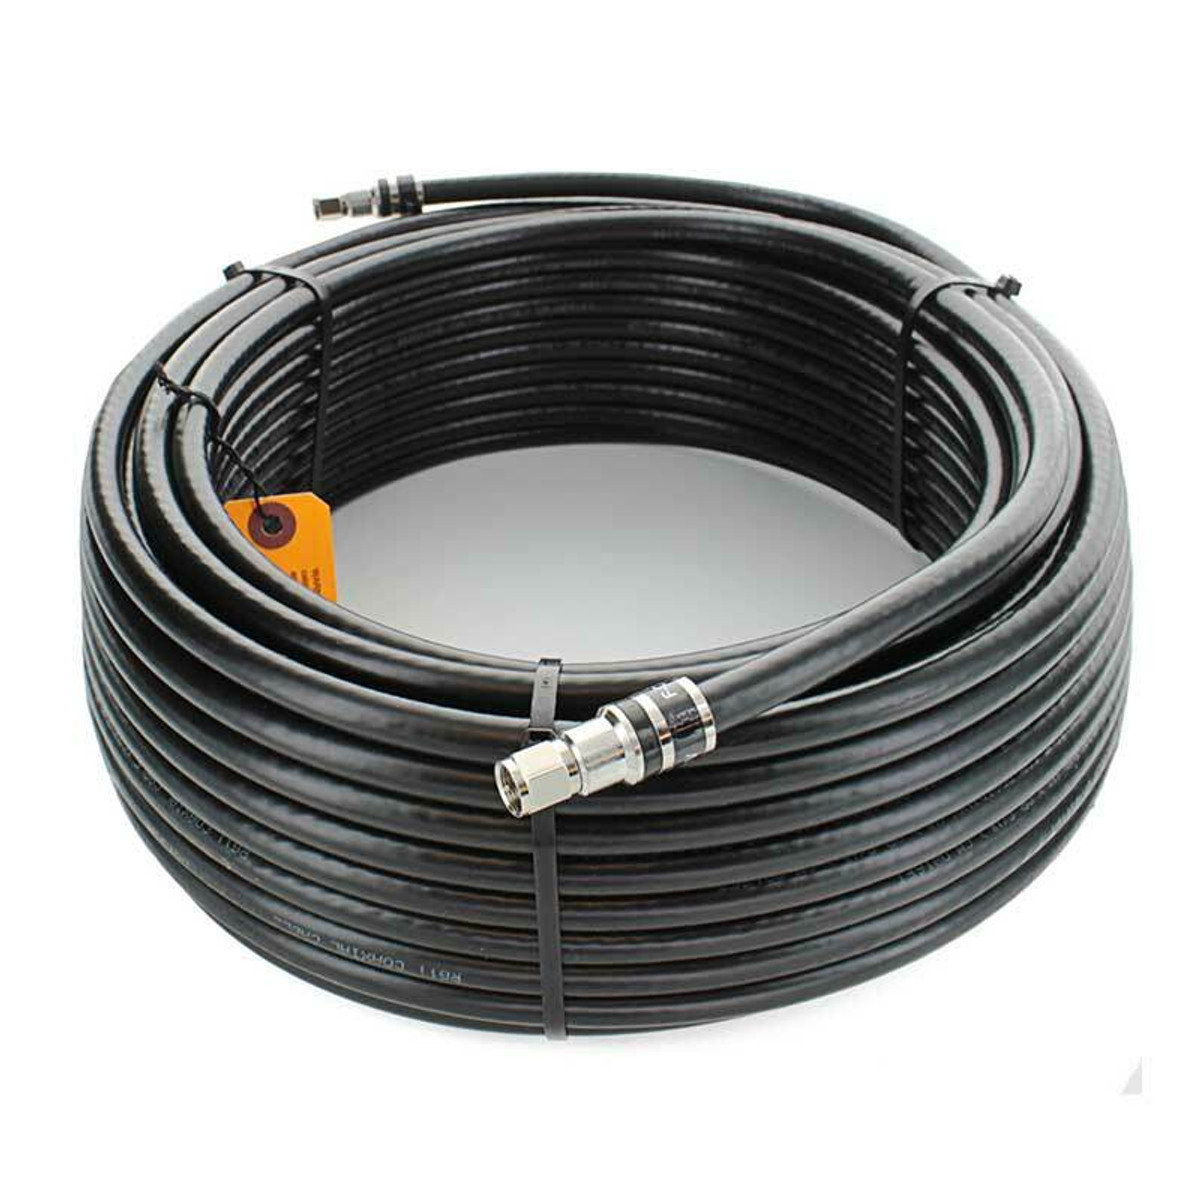 weBoost (Wilson) 951100 RG11 F-Male |100 ft Black Cable